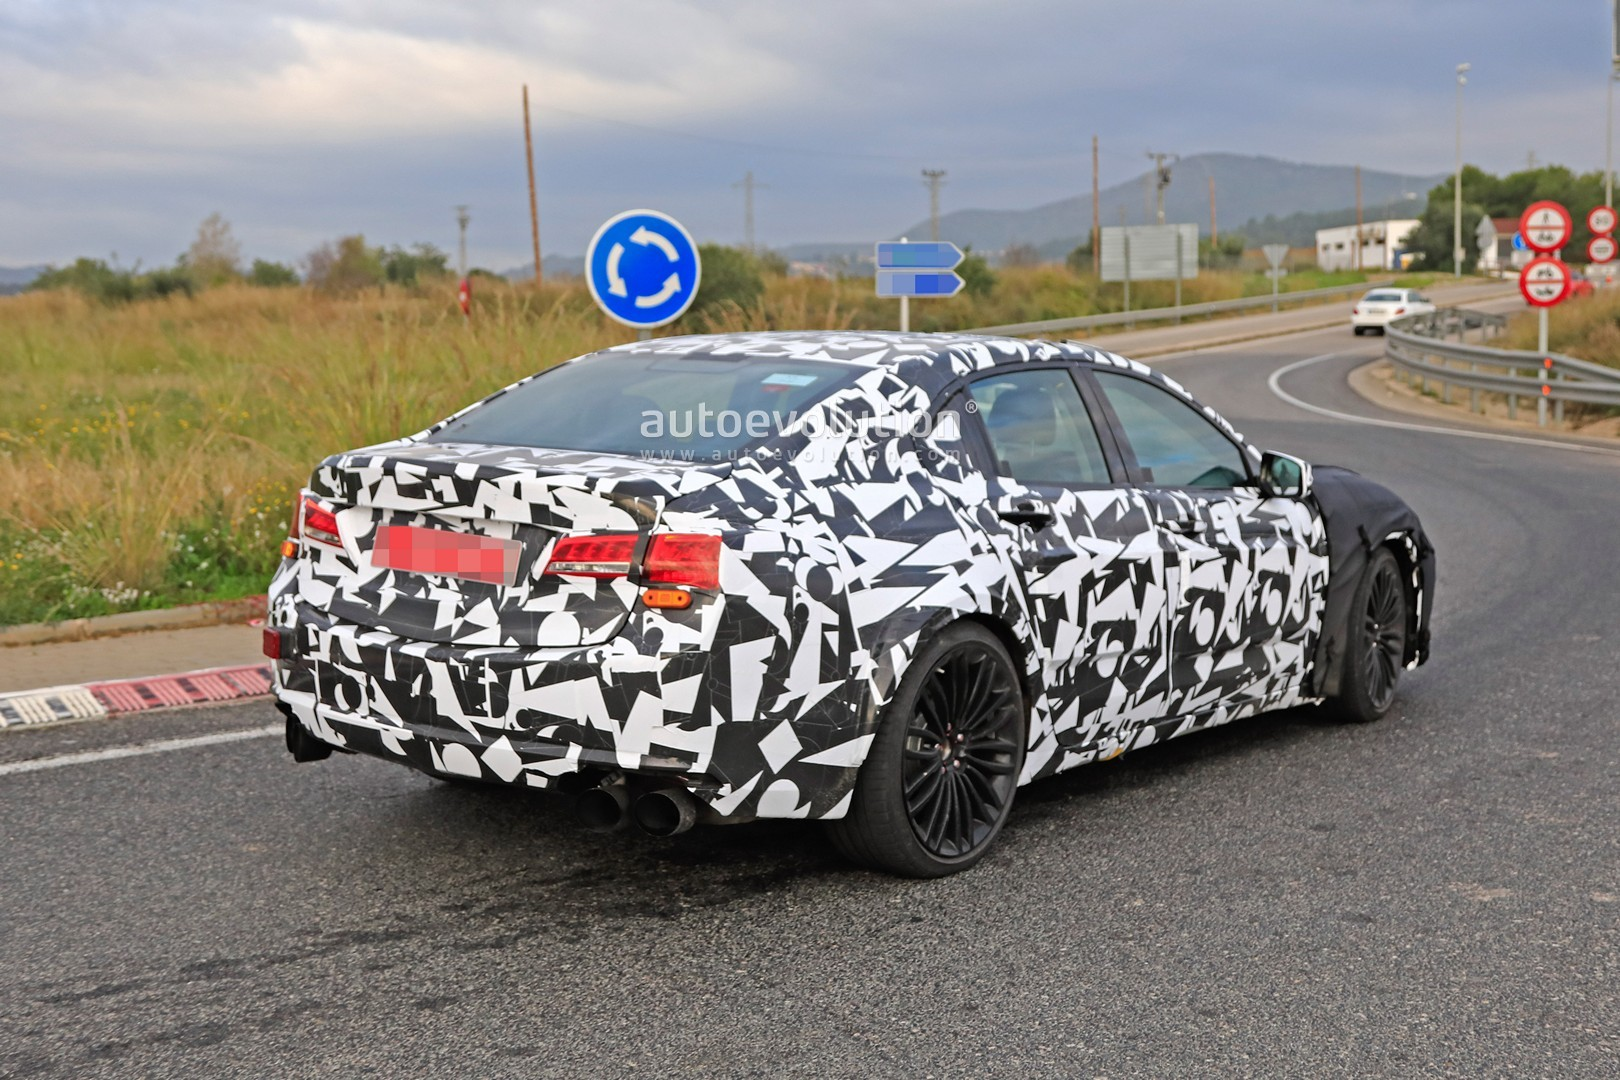 2020 Acura Tlx Type S Spied With Audi S4 And Amg C43 V6 Turbo